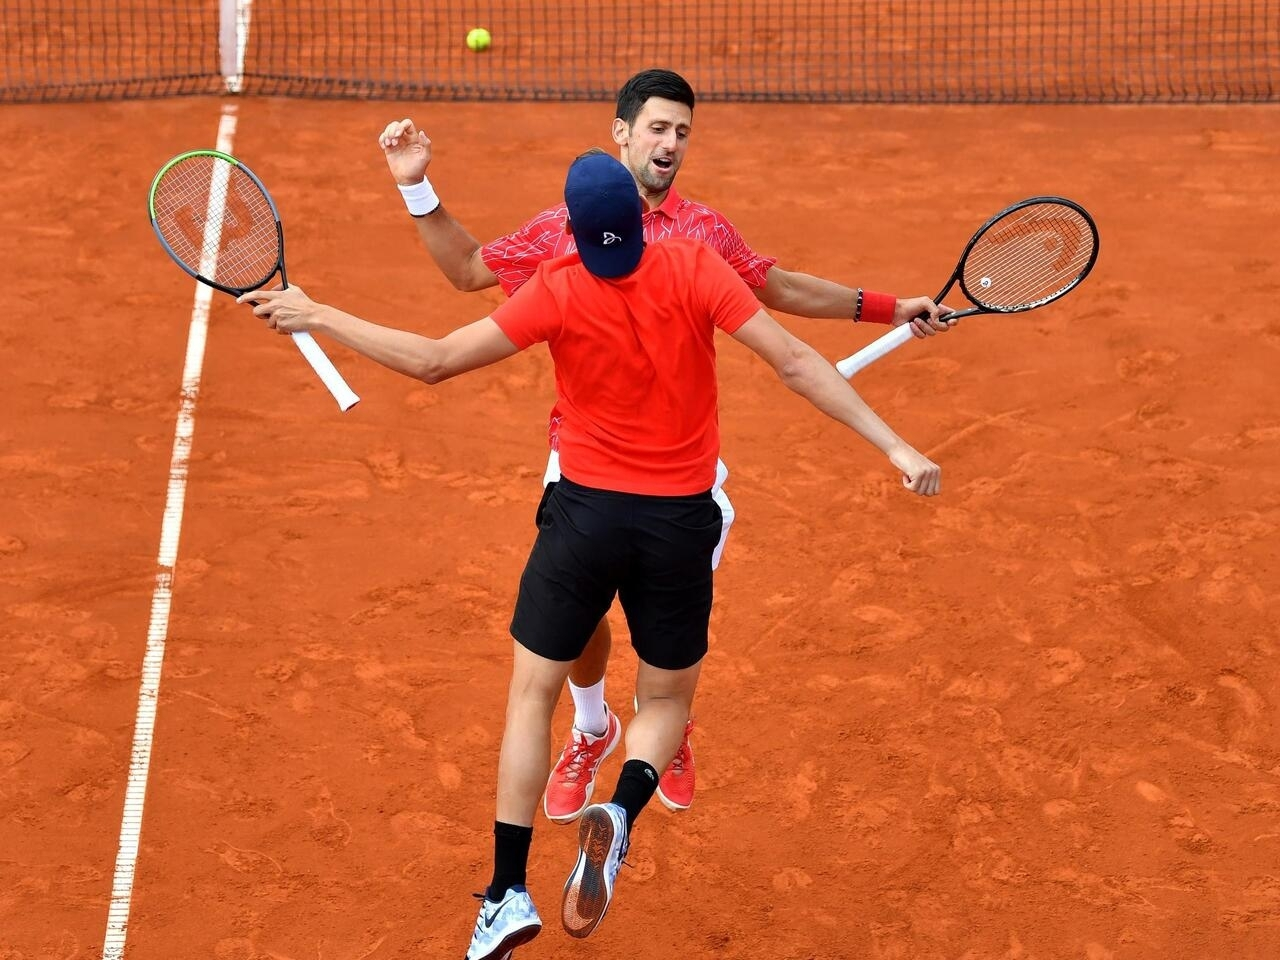 Djokovic Tests Positive For Covid 19 Deeply Sorry For Hosting Tennis Event